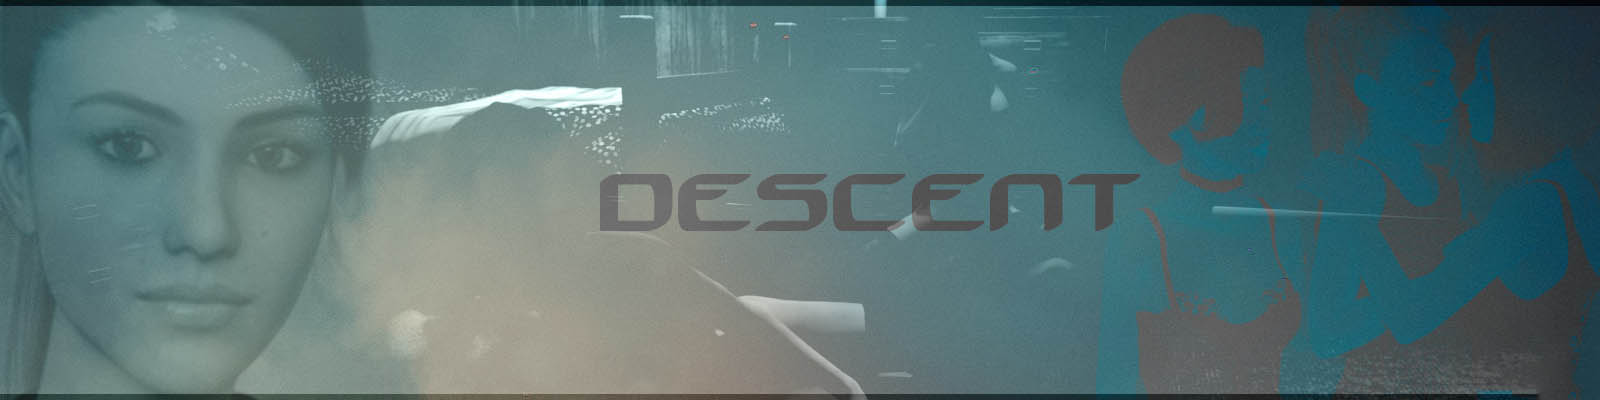 Descent-3d-sex-game-porn-game-adult-game